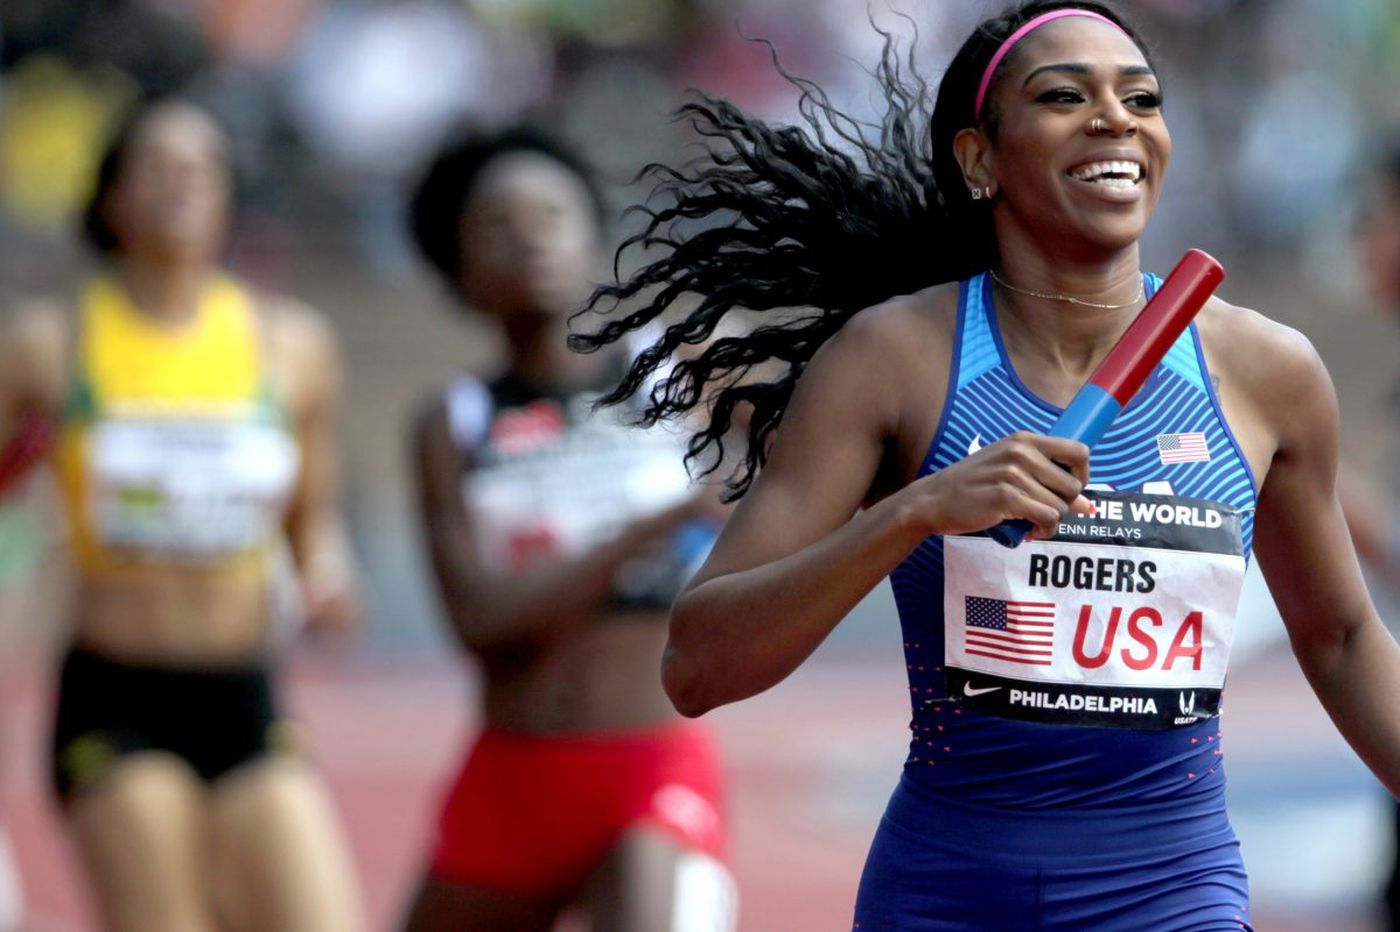 Penn Relays: United States women set world record in sprint medley, dominates USA vs. The World relays